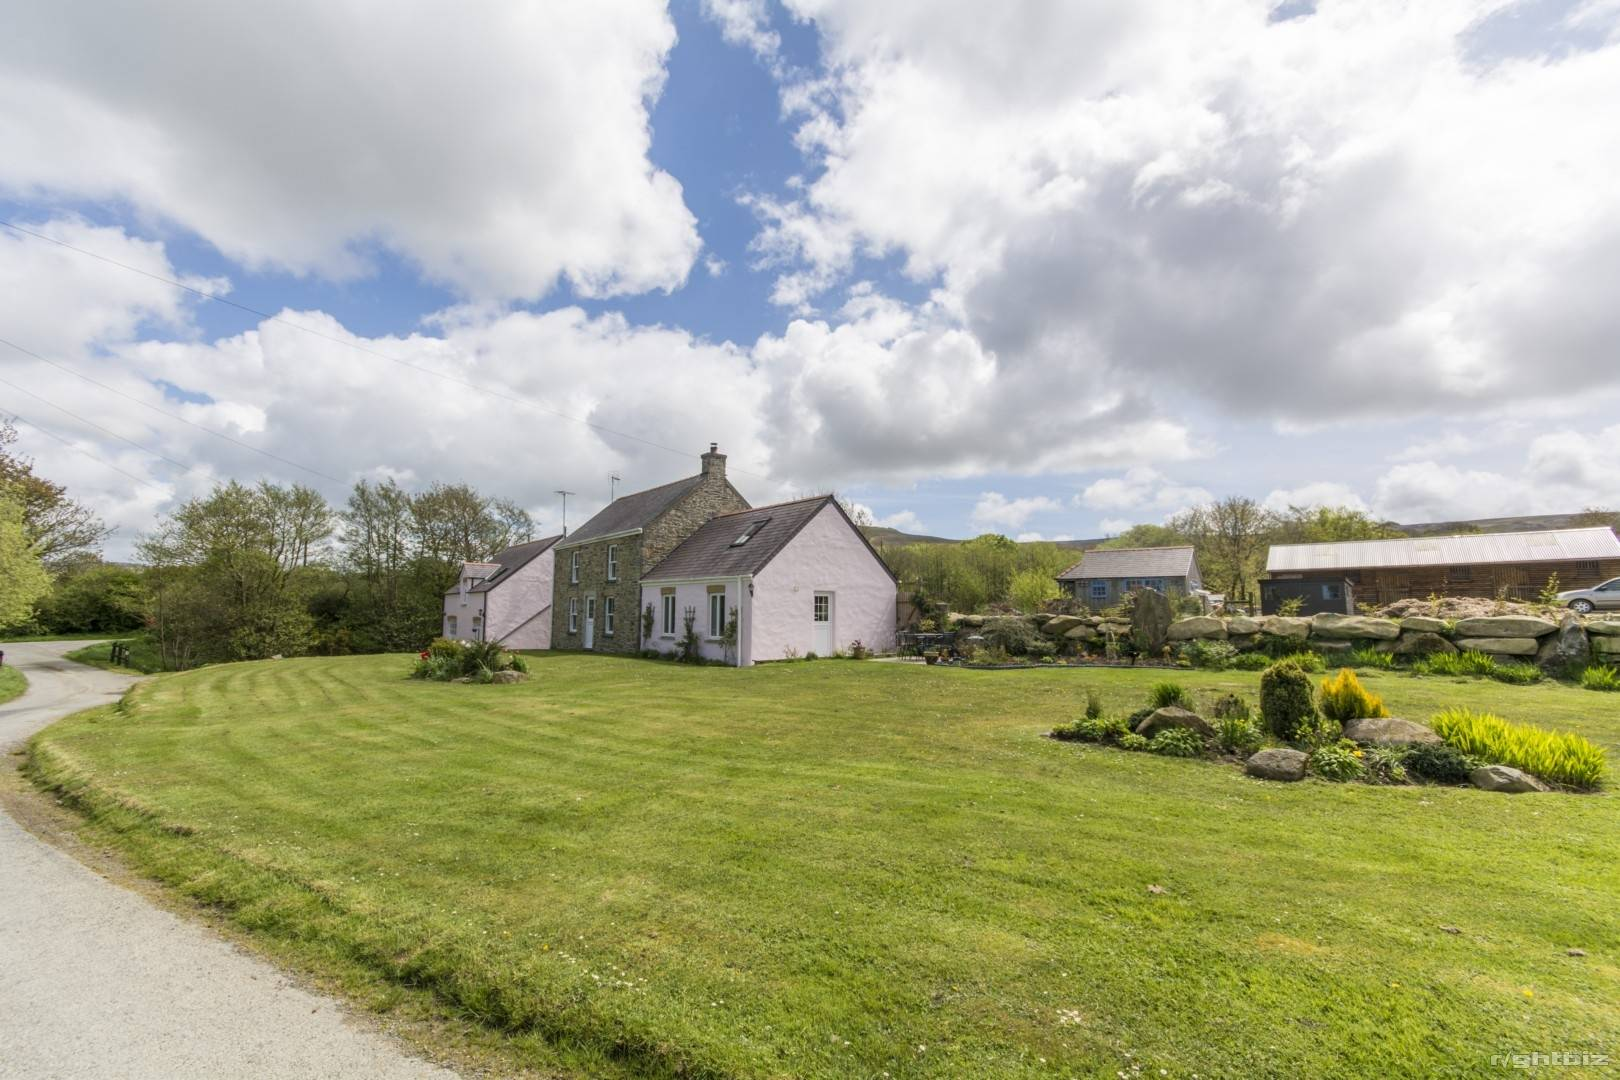 HOLIDAY LETTING BUSINESS/ LIVERY POTENTIAL + SMALLHOLDING + STABLES SET IN 10 ACRES - PEMBROKESHIRE - Image 15